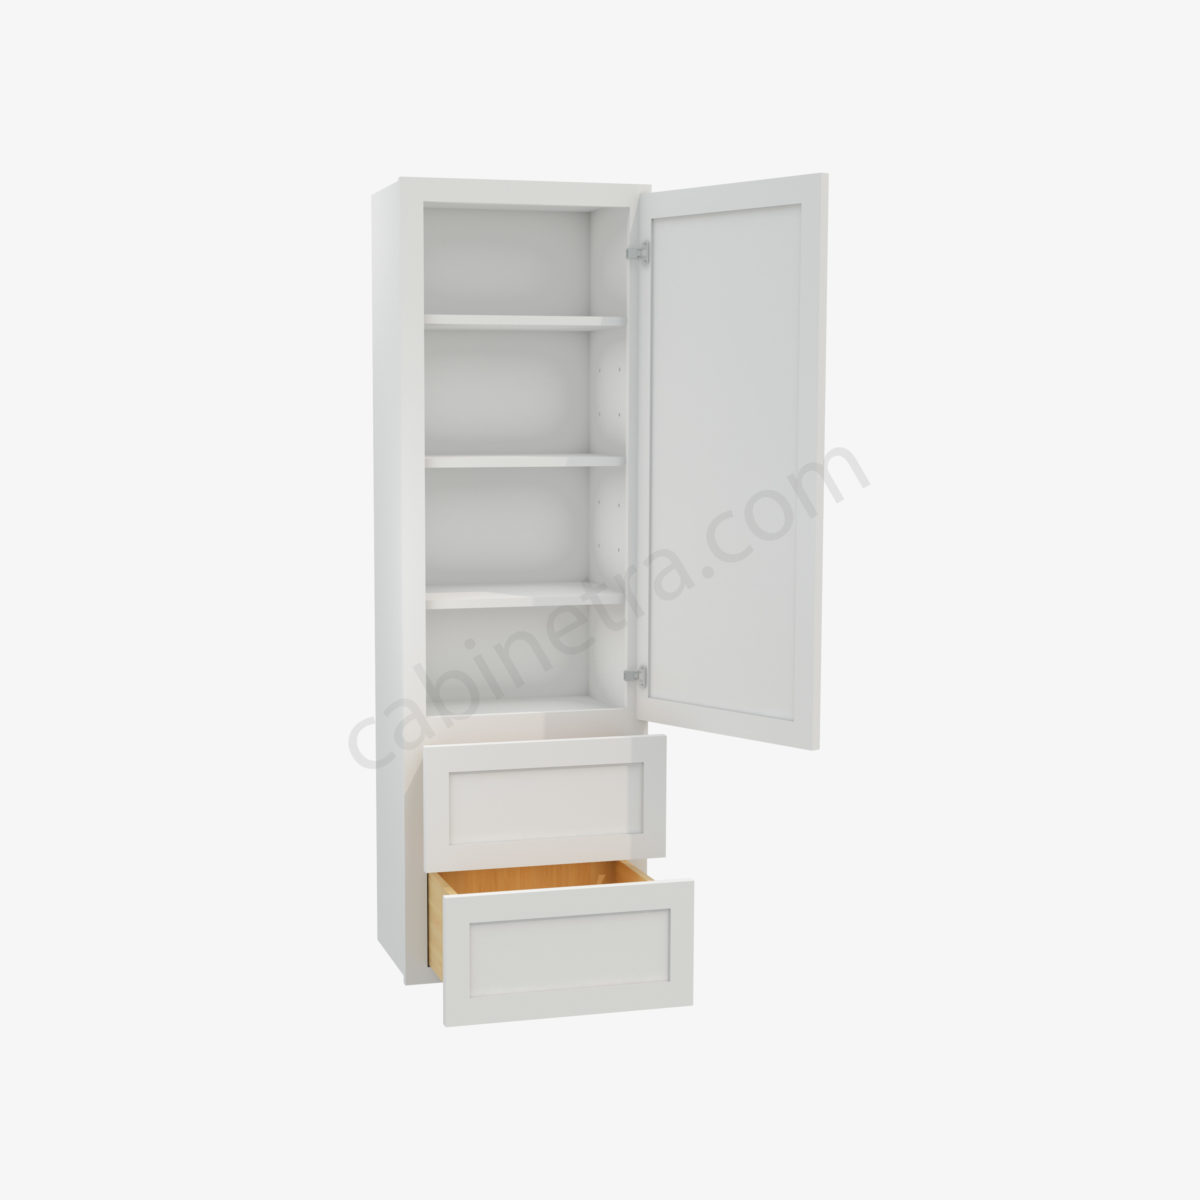 AW W2D1860 1 Forevermark Ice White Shaker Cabinetra scaled